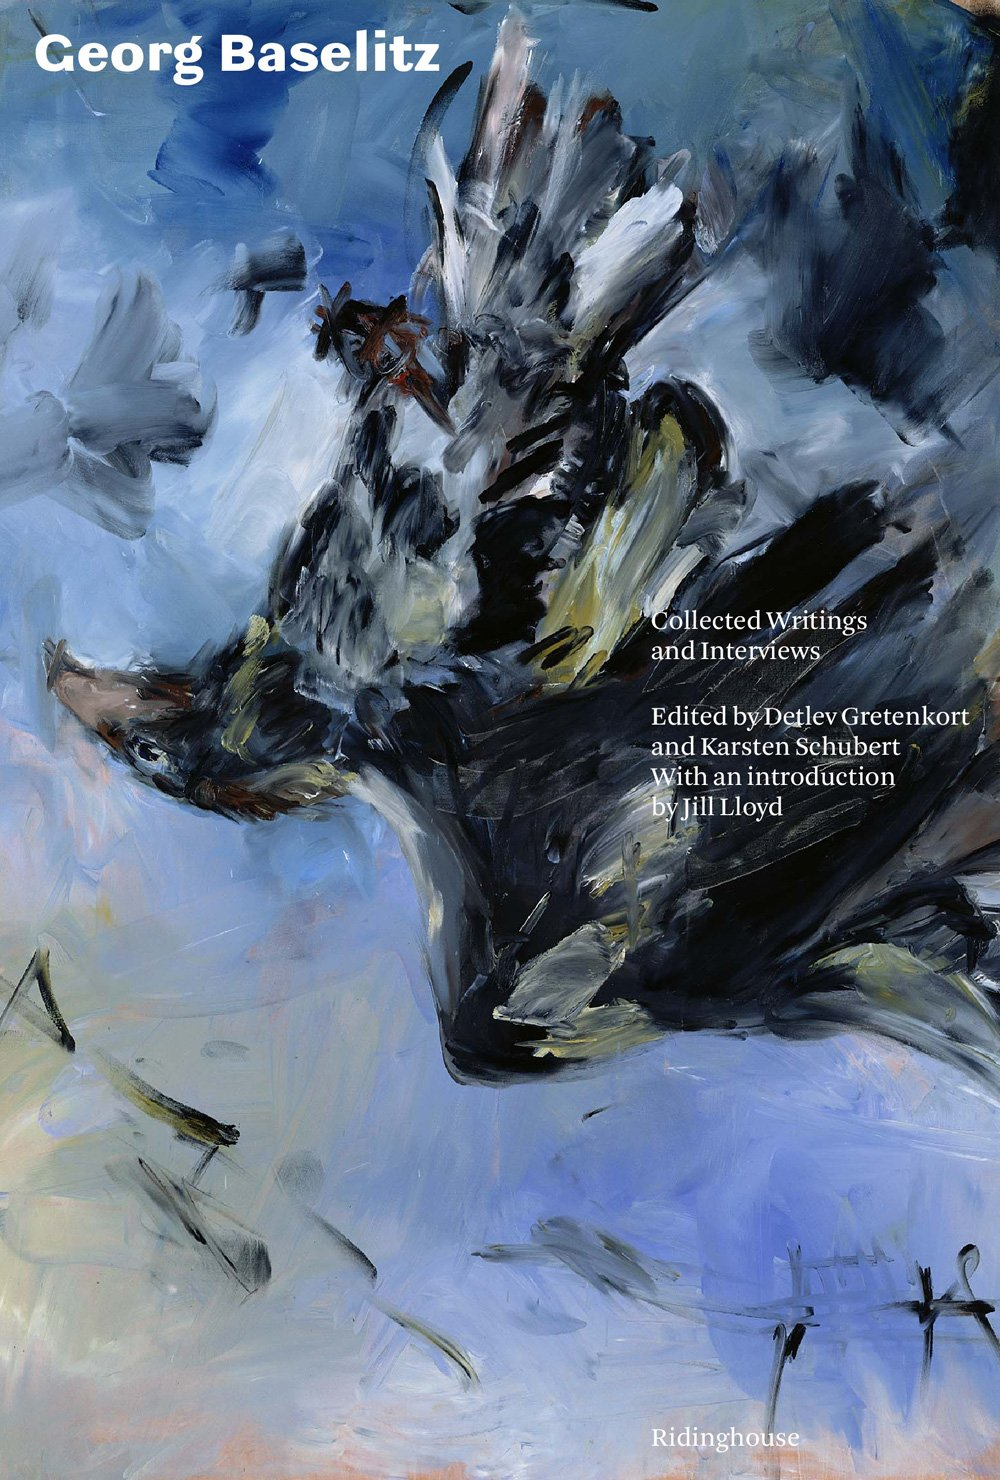 Download Georg Baselitz: Collected Writings and Interviews pdf